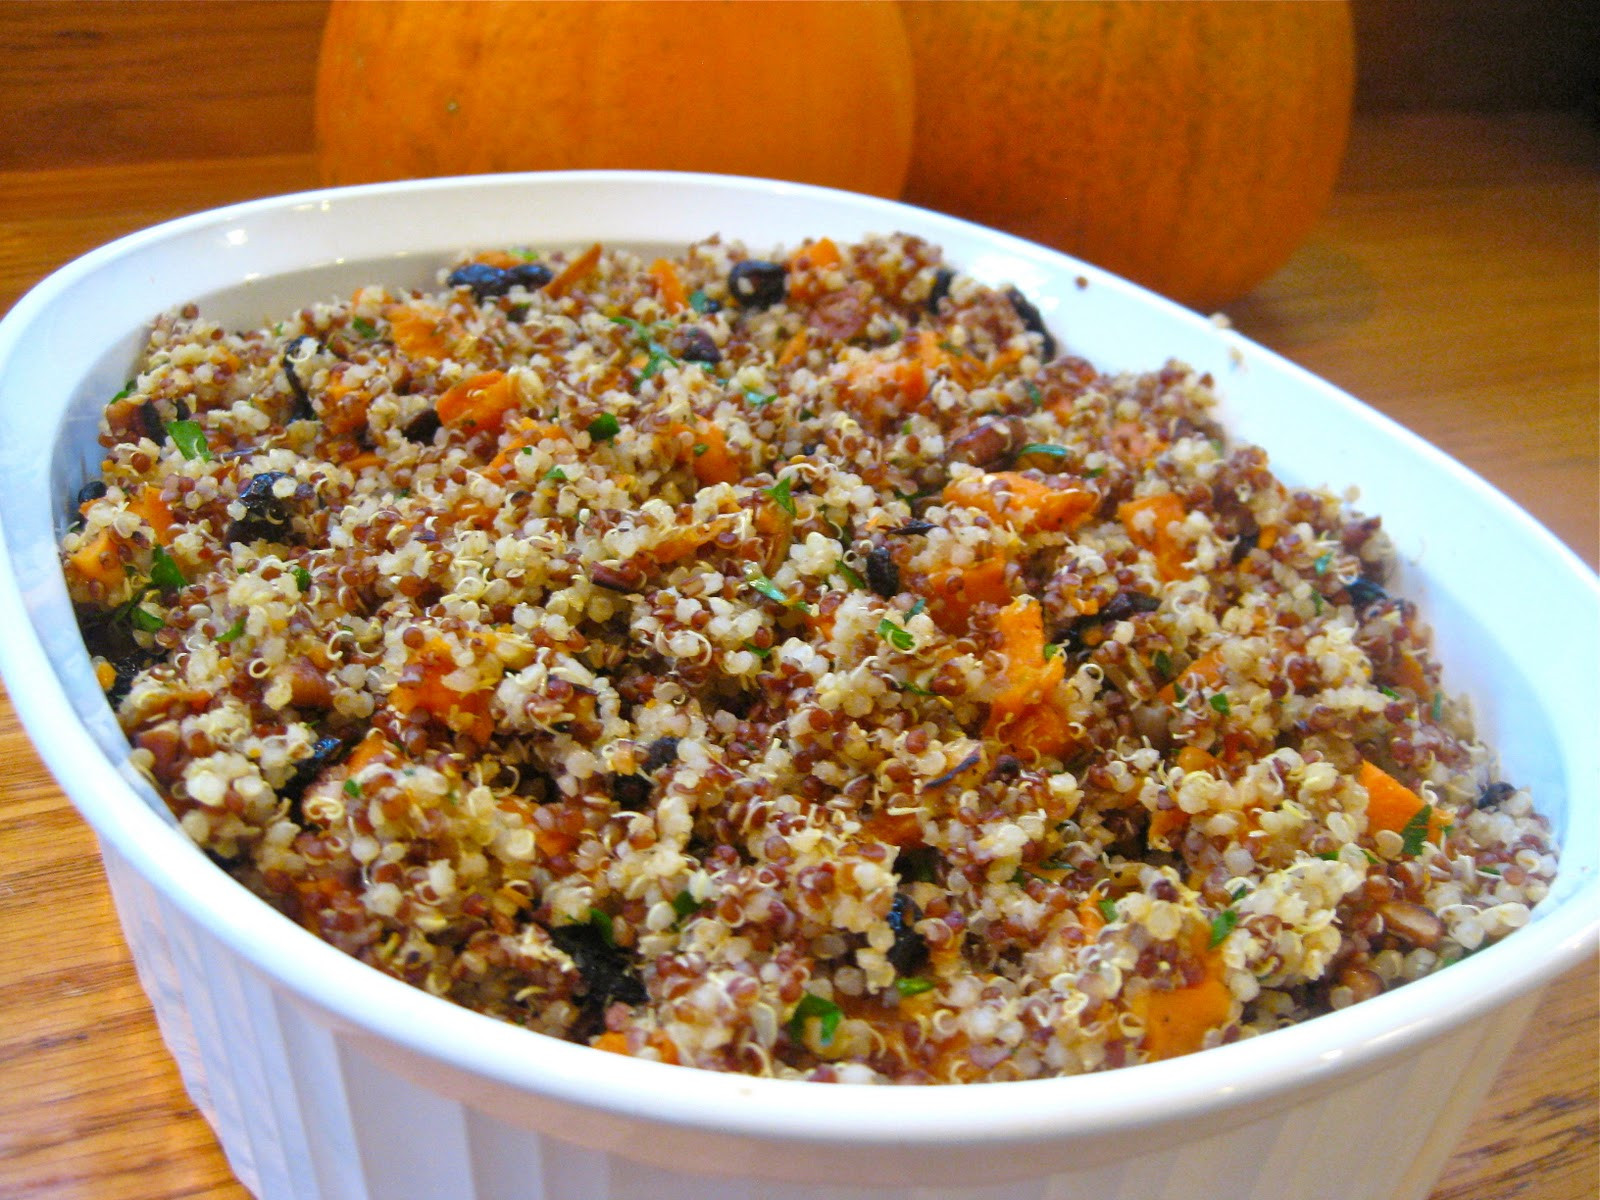 Healthy Stuffing Recipes for Thanksgiving Best 20 Quinoa Stuffing Recipe Gluten Free & Vegan